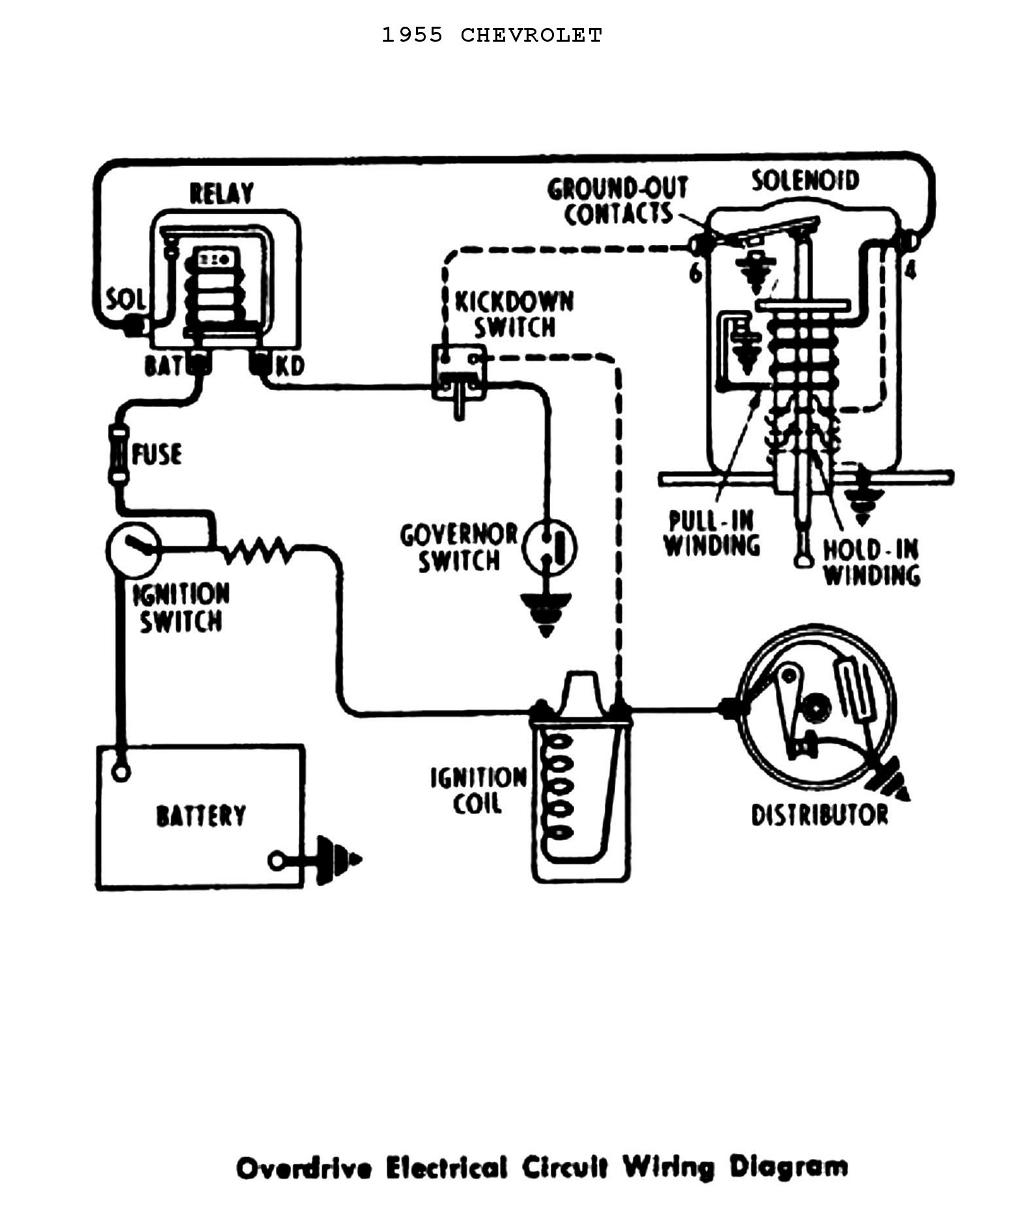 gm hei distributor module wiring diagram free download